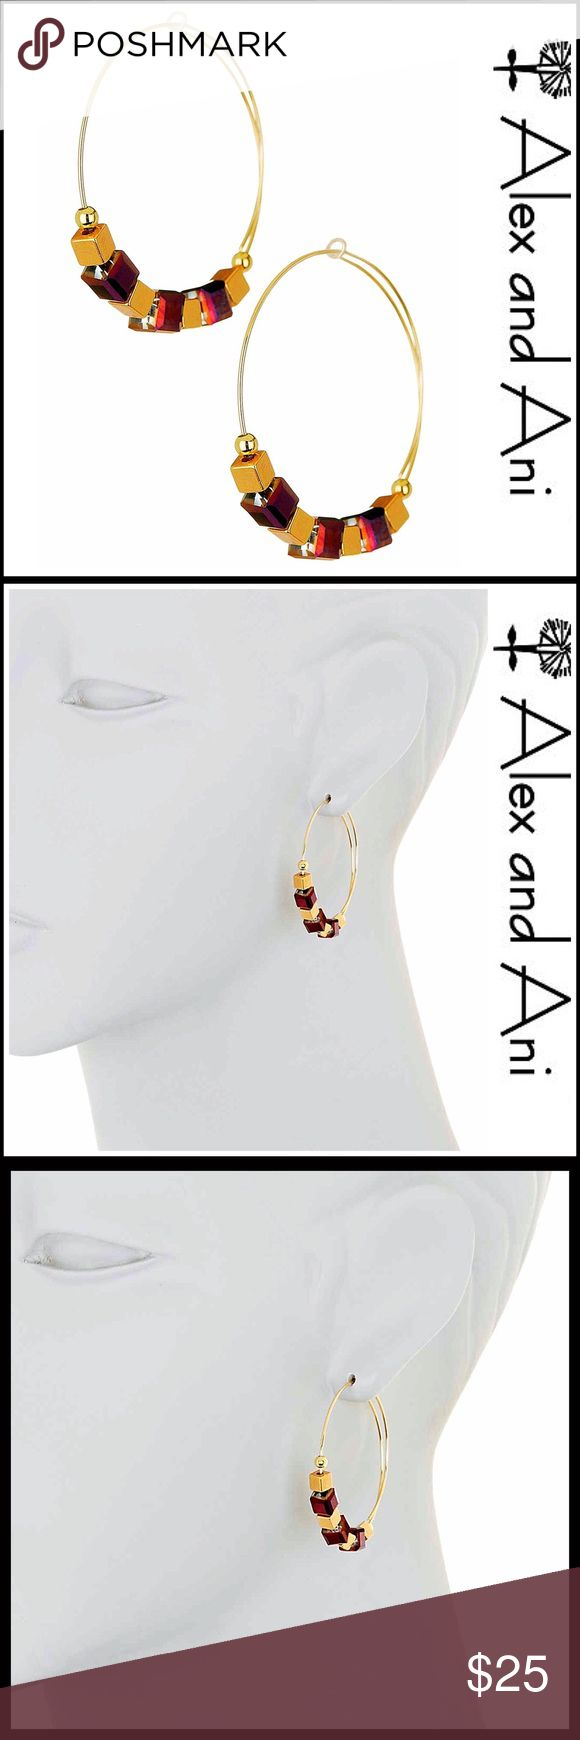 "ALEX & ANI Beaded Hoop Earrings 💟NEW WITH TAGS💟   ALEX & ANI Beaded Hoop Earrings   * Cube beaded details    * Beautiful gold-tone finish     * Measures approx 1 5/8"" long  * Threads through ear   * Made in USA Material: Gold-tone metal, glass bead Item#  Statement 🚫No Trades🚫 ✅ Offers Considered*/Bundle Discounts✅ *Please use the 'offer' button to submit an offer Alex & Ani Jewelry Earrings"